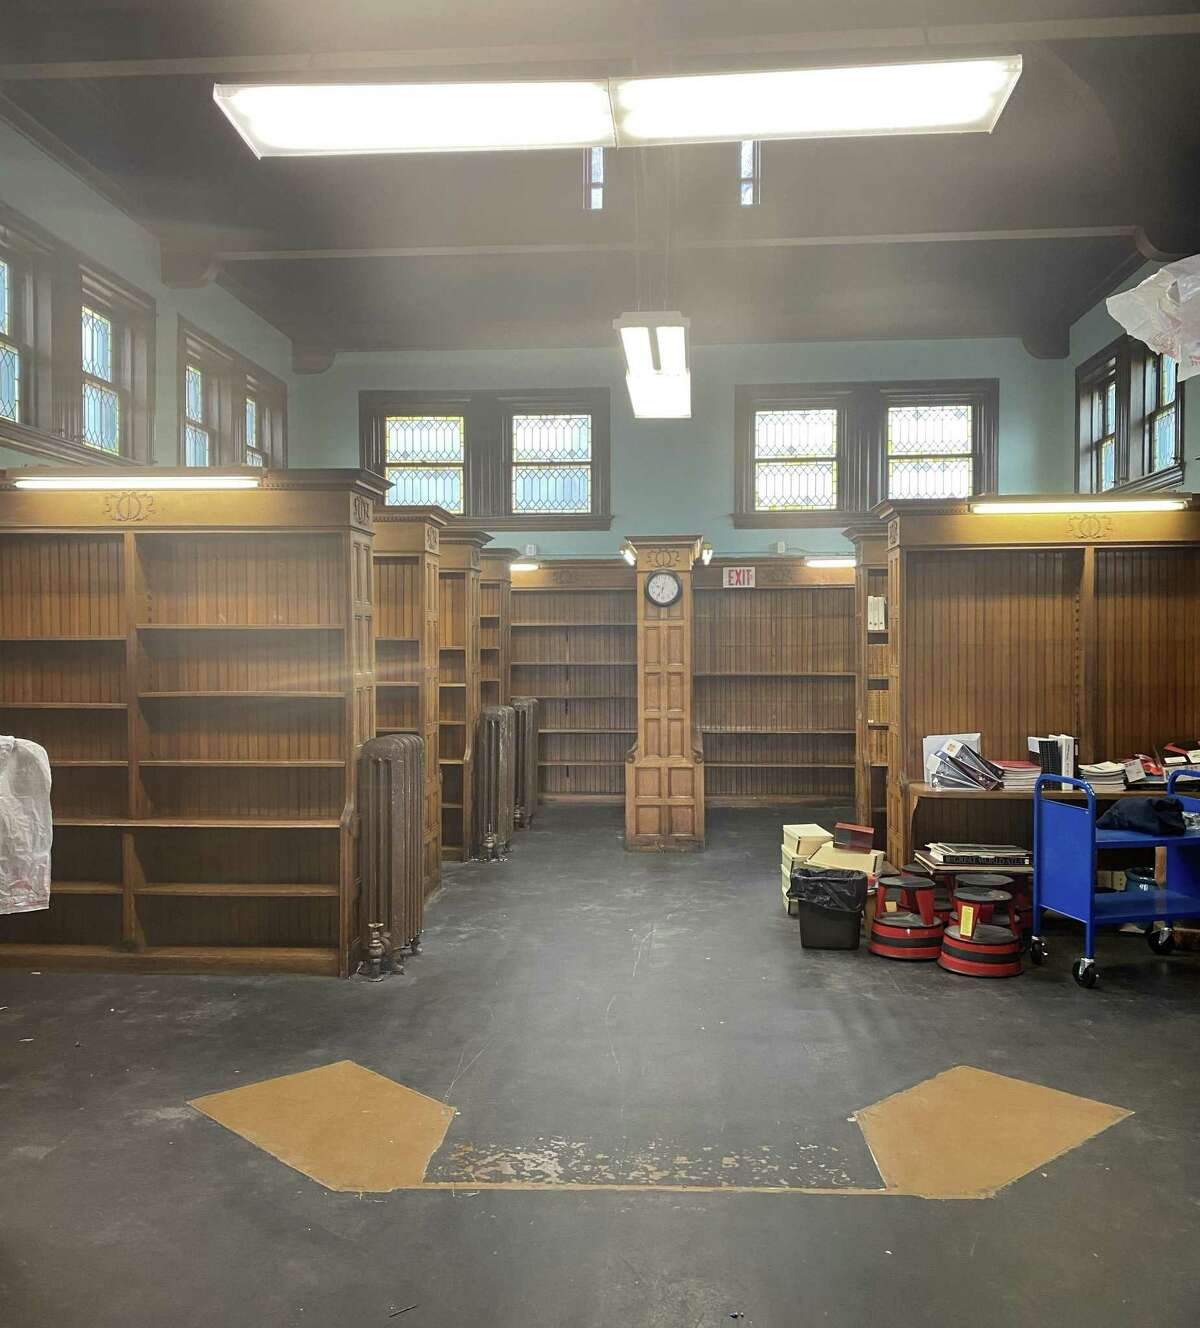 The city is updating the public restrooms to make them ADA compliant, and the library board is overseeing renovation - including fresh paint, new lighting and refinishing the wood floors - of the older part of the building.